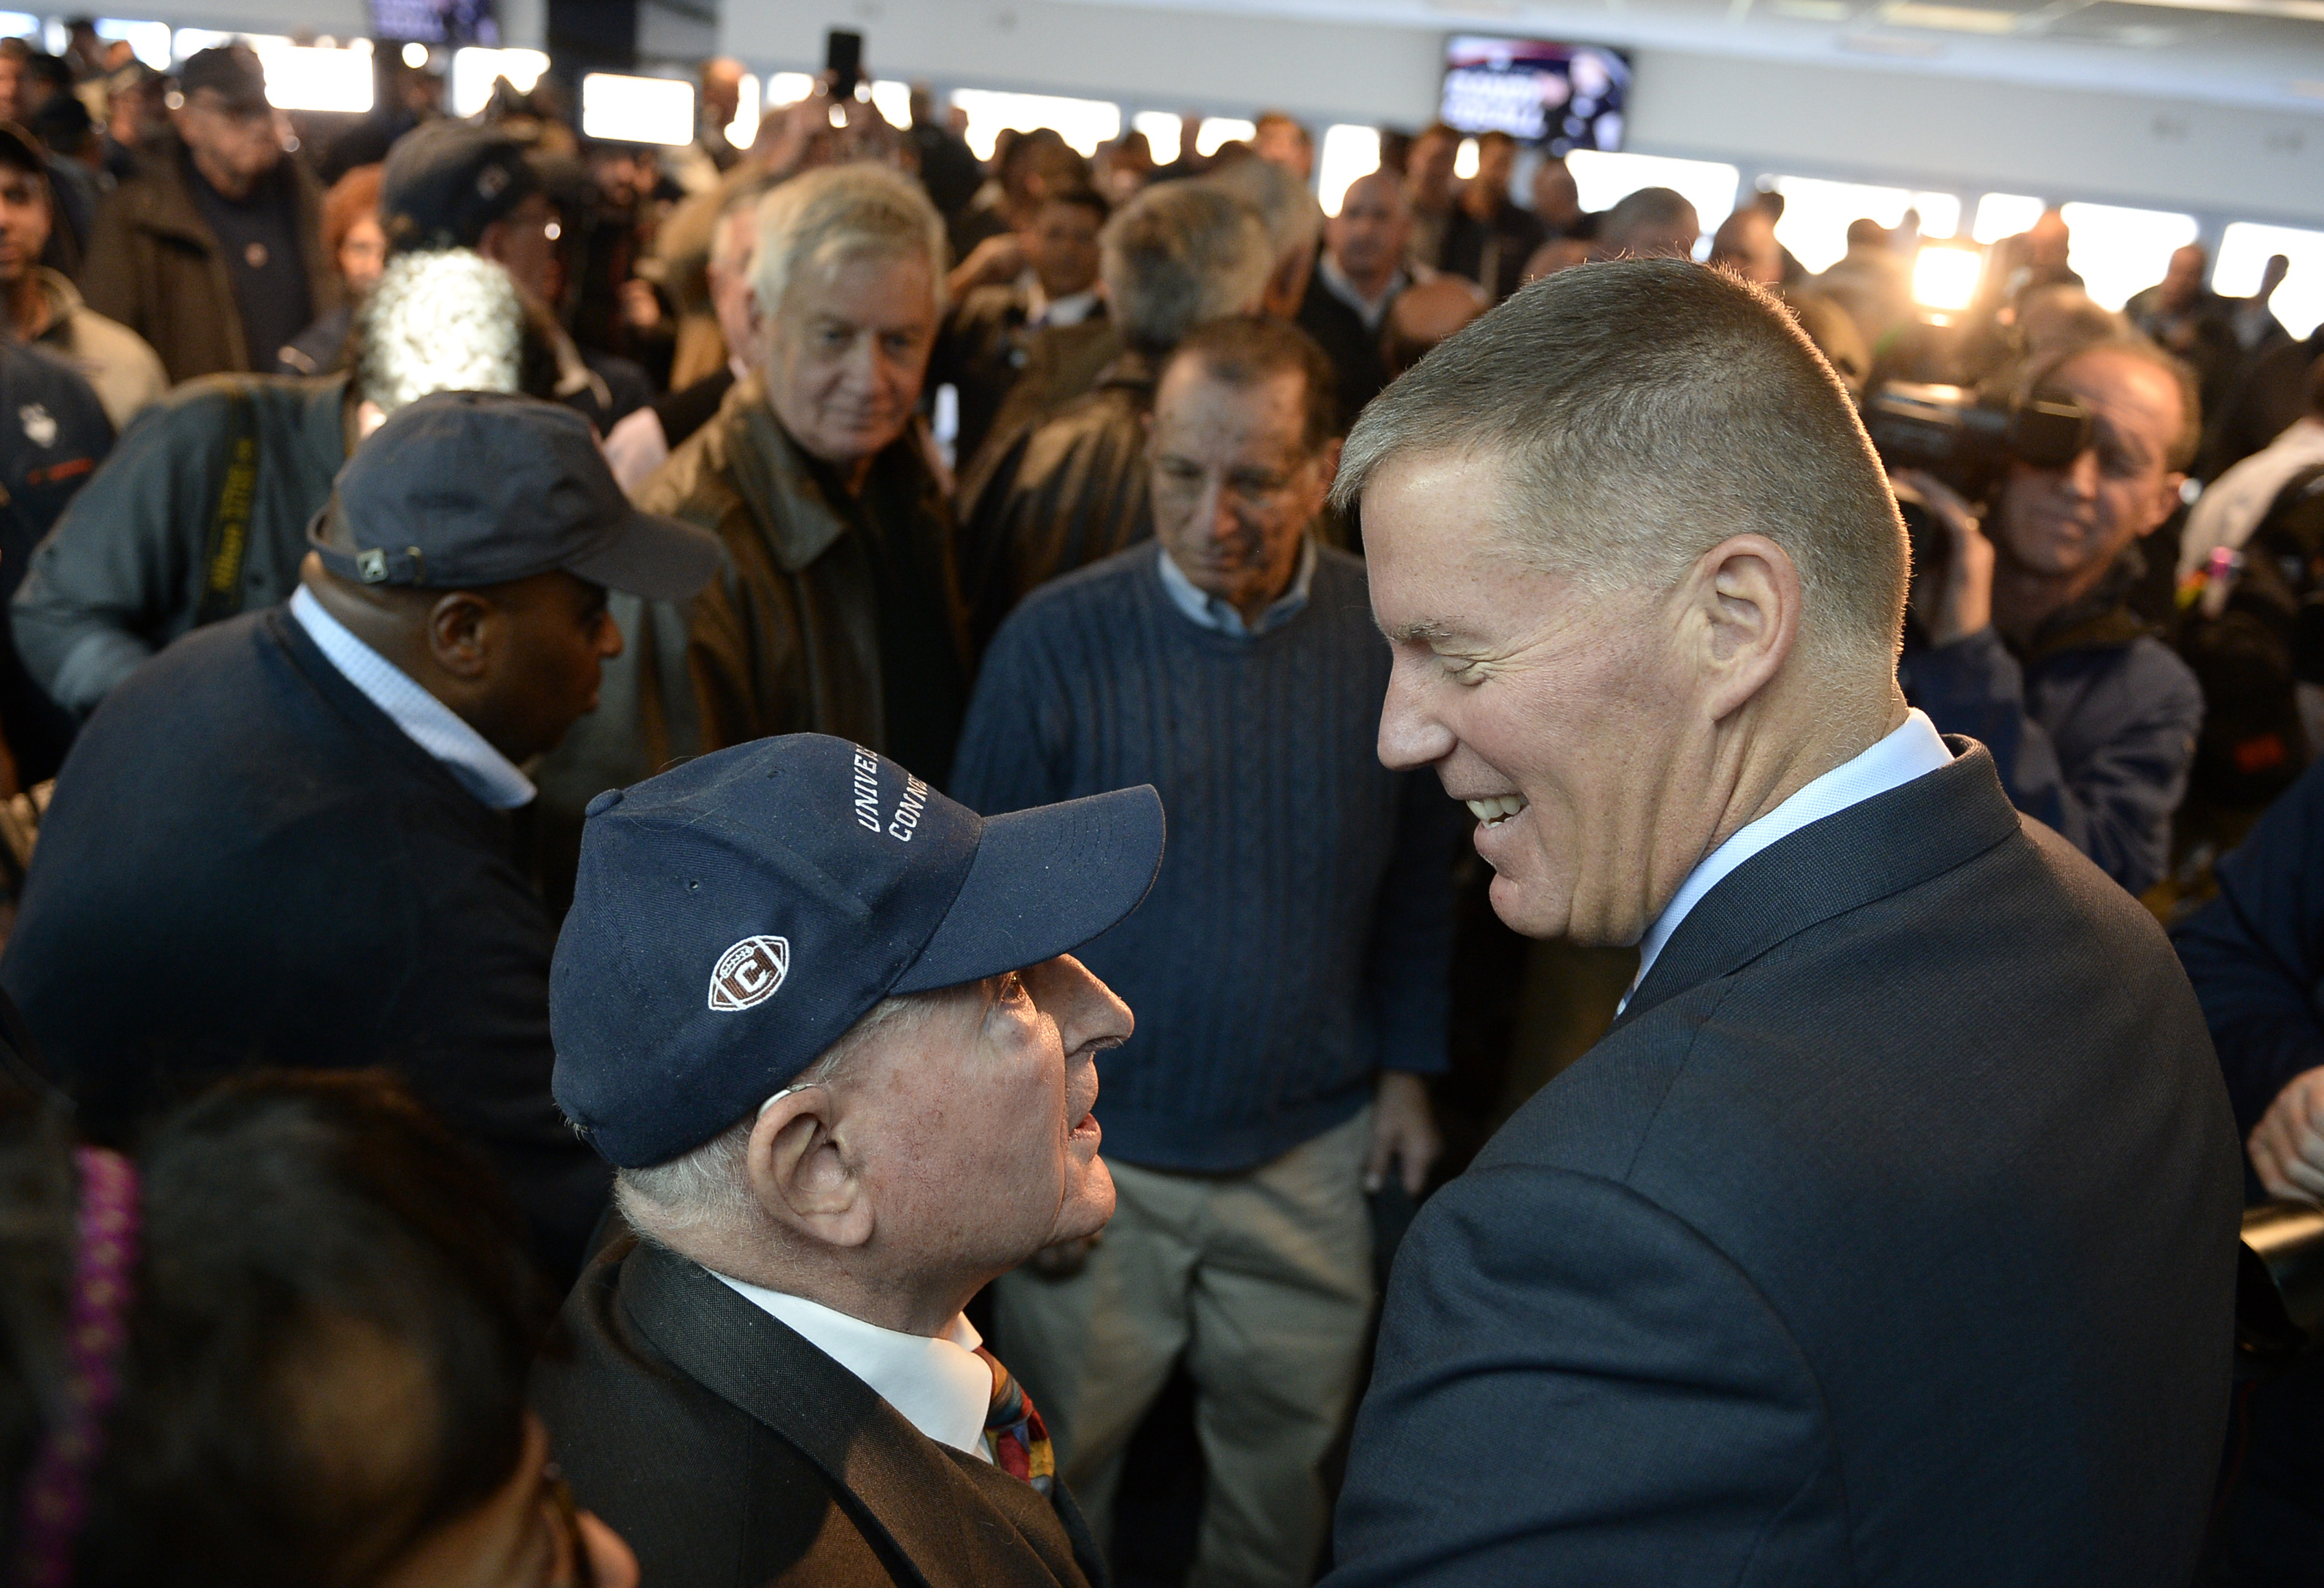 Newly announced Connecticut football head coach Randy Edsall talks with fan Milton Porter of Hebron, Conn., left, after an NCAA college football news conference at Pratt & Whitney Stadium at Rentschler Field, Friday, Dec. 30, 2016, in East Hartford, Conn.